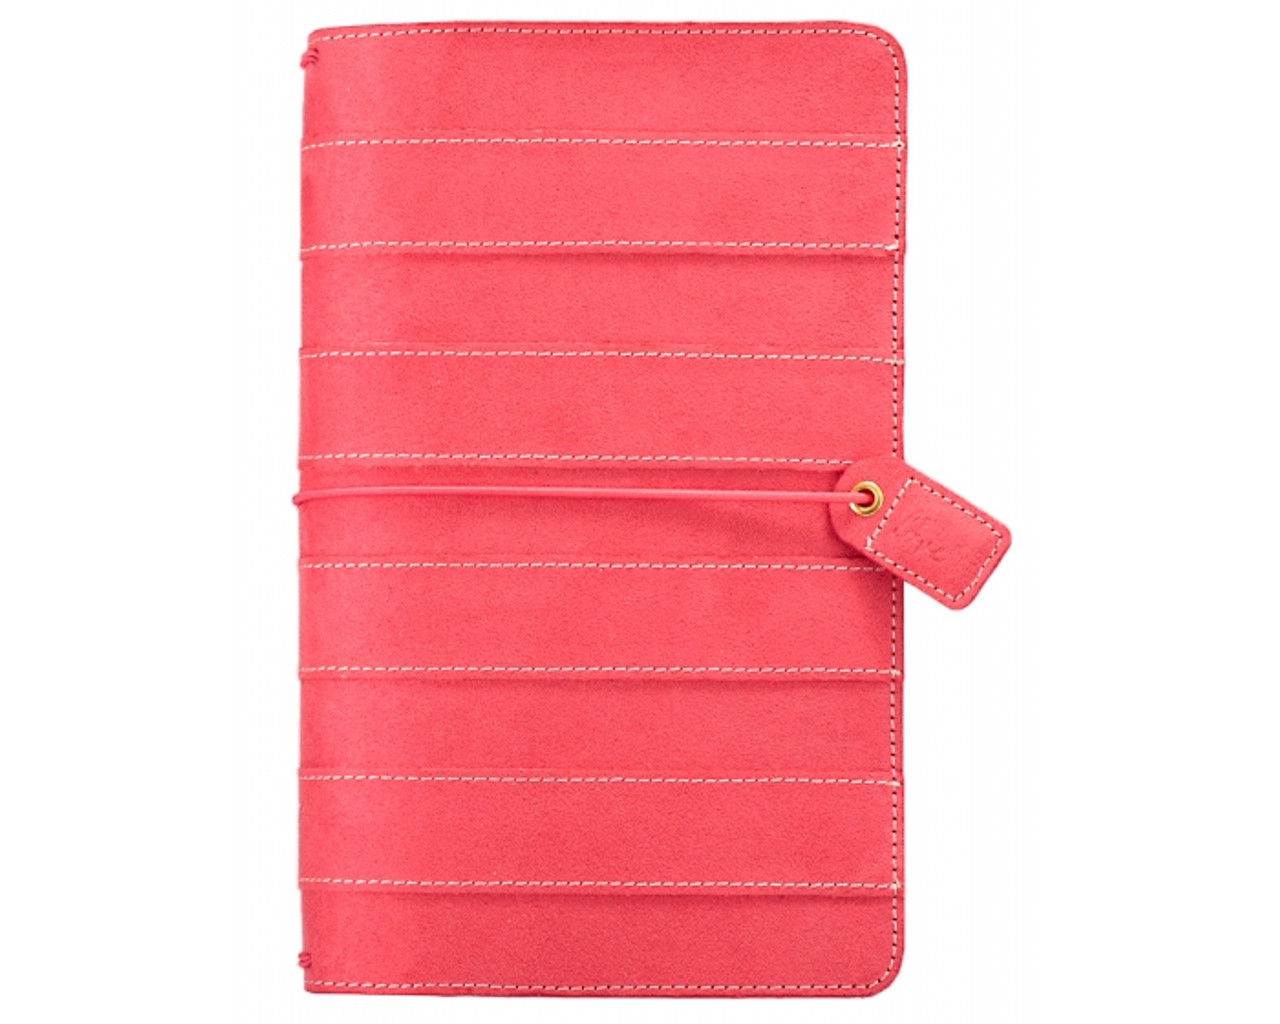 Travelers Notebook - Webster's Pages - Pink Stitched Stripe Dori - Journal your thoughts for Bible Journalling!